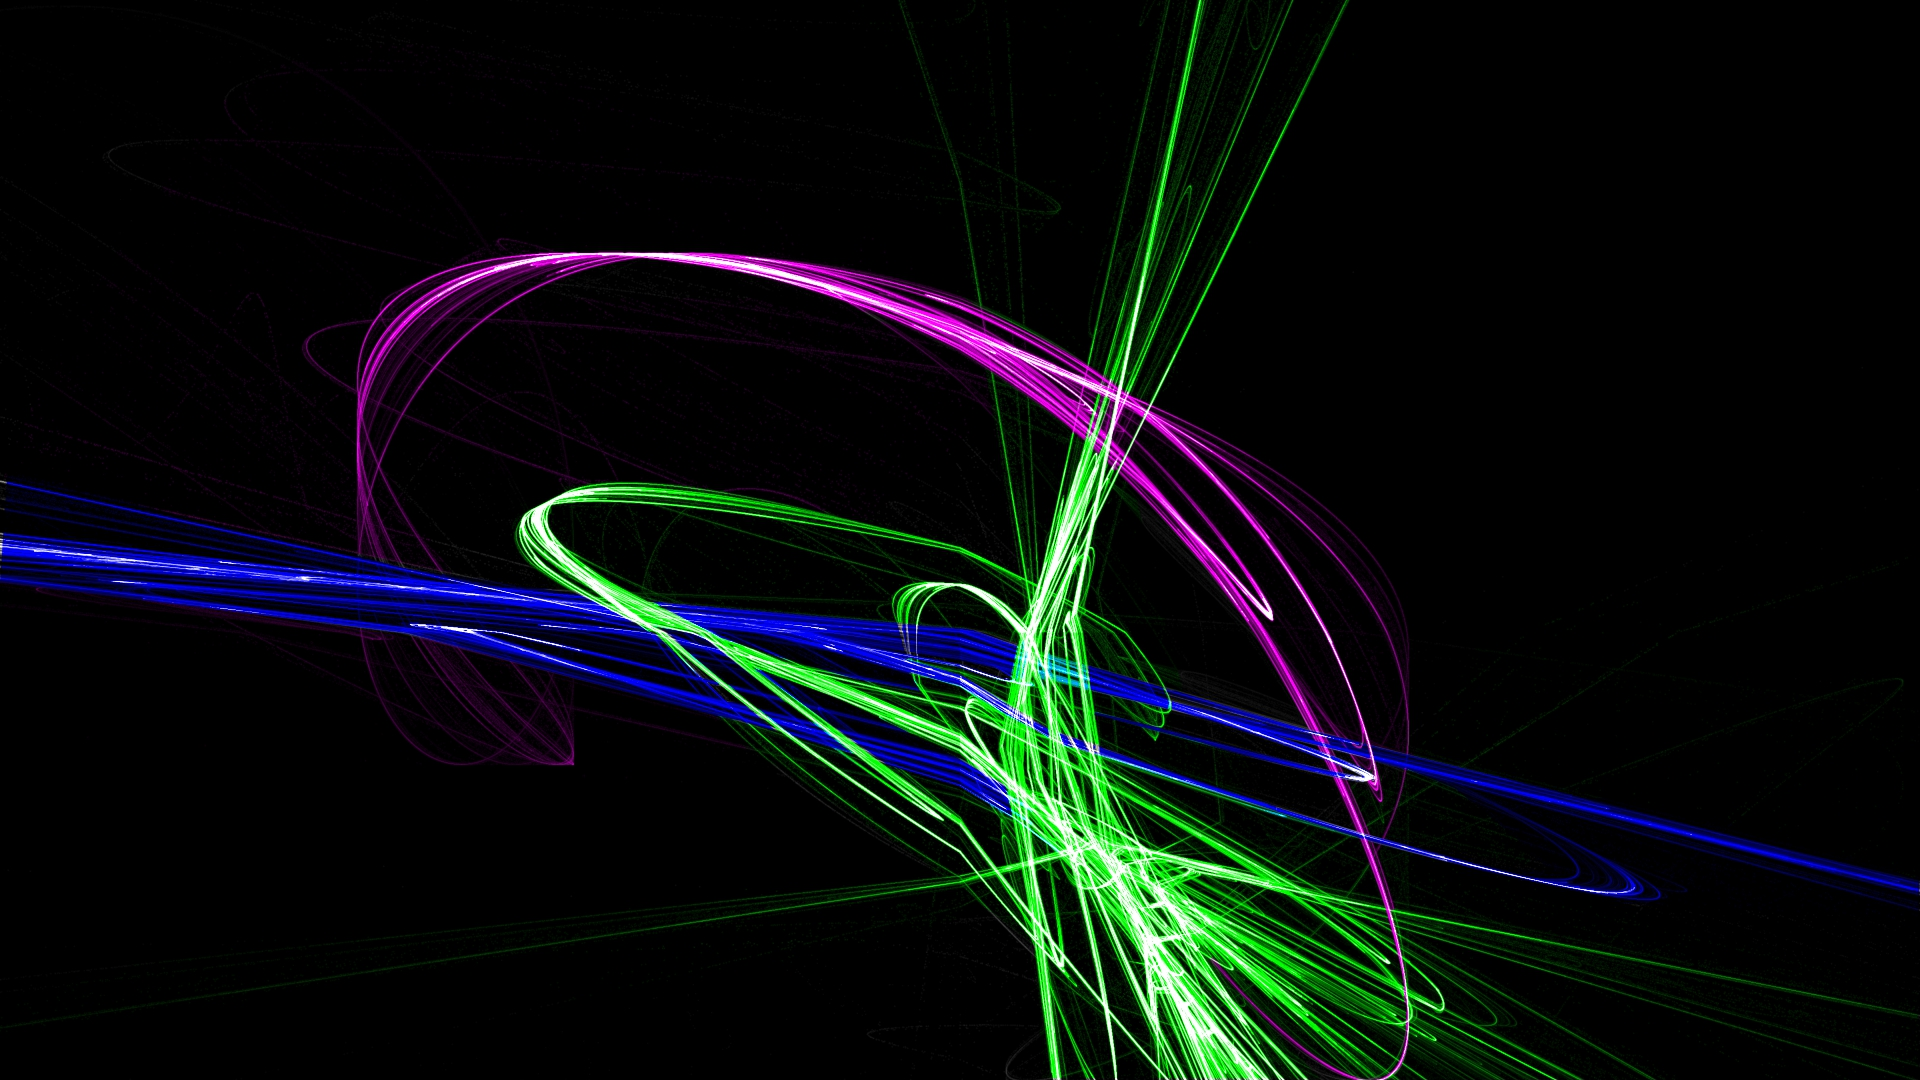 Cool Abstract Backgrounds wallpaper   295601 1920x1080